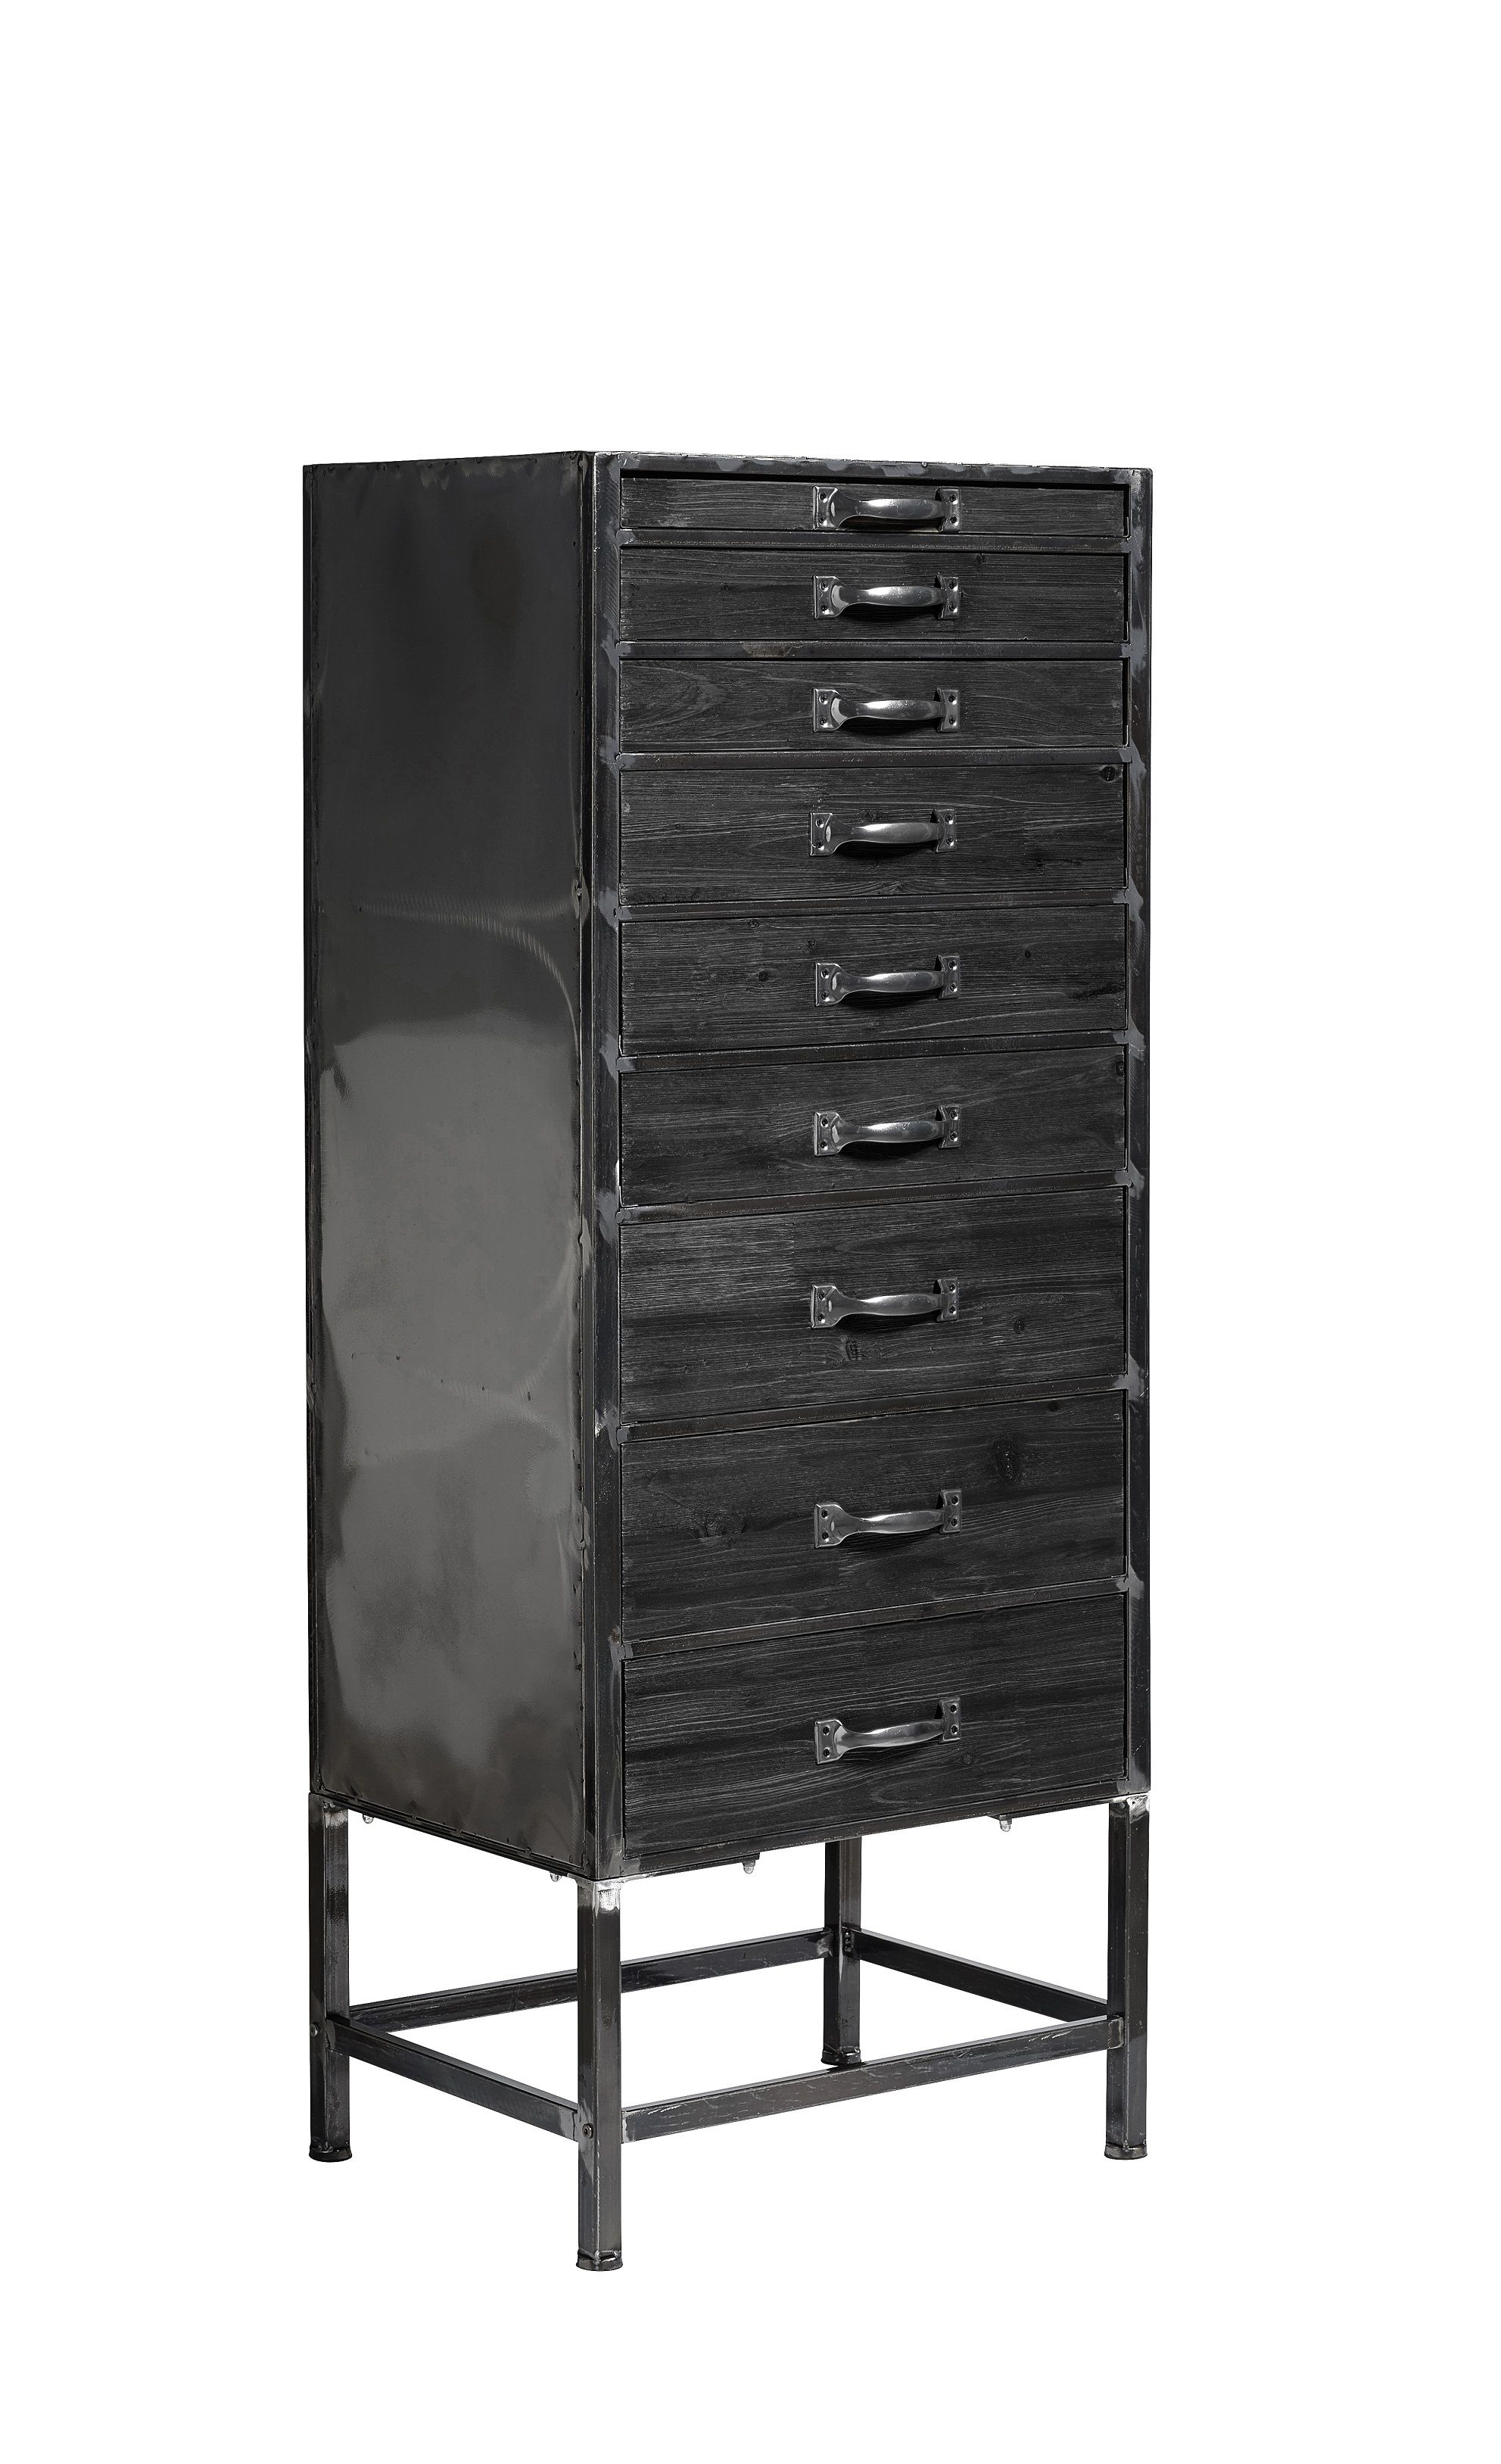 kommode industrial schwarz holz metall milj interior. Black Bedroom Furniture Sets. Home Design Ideas